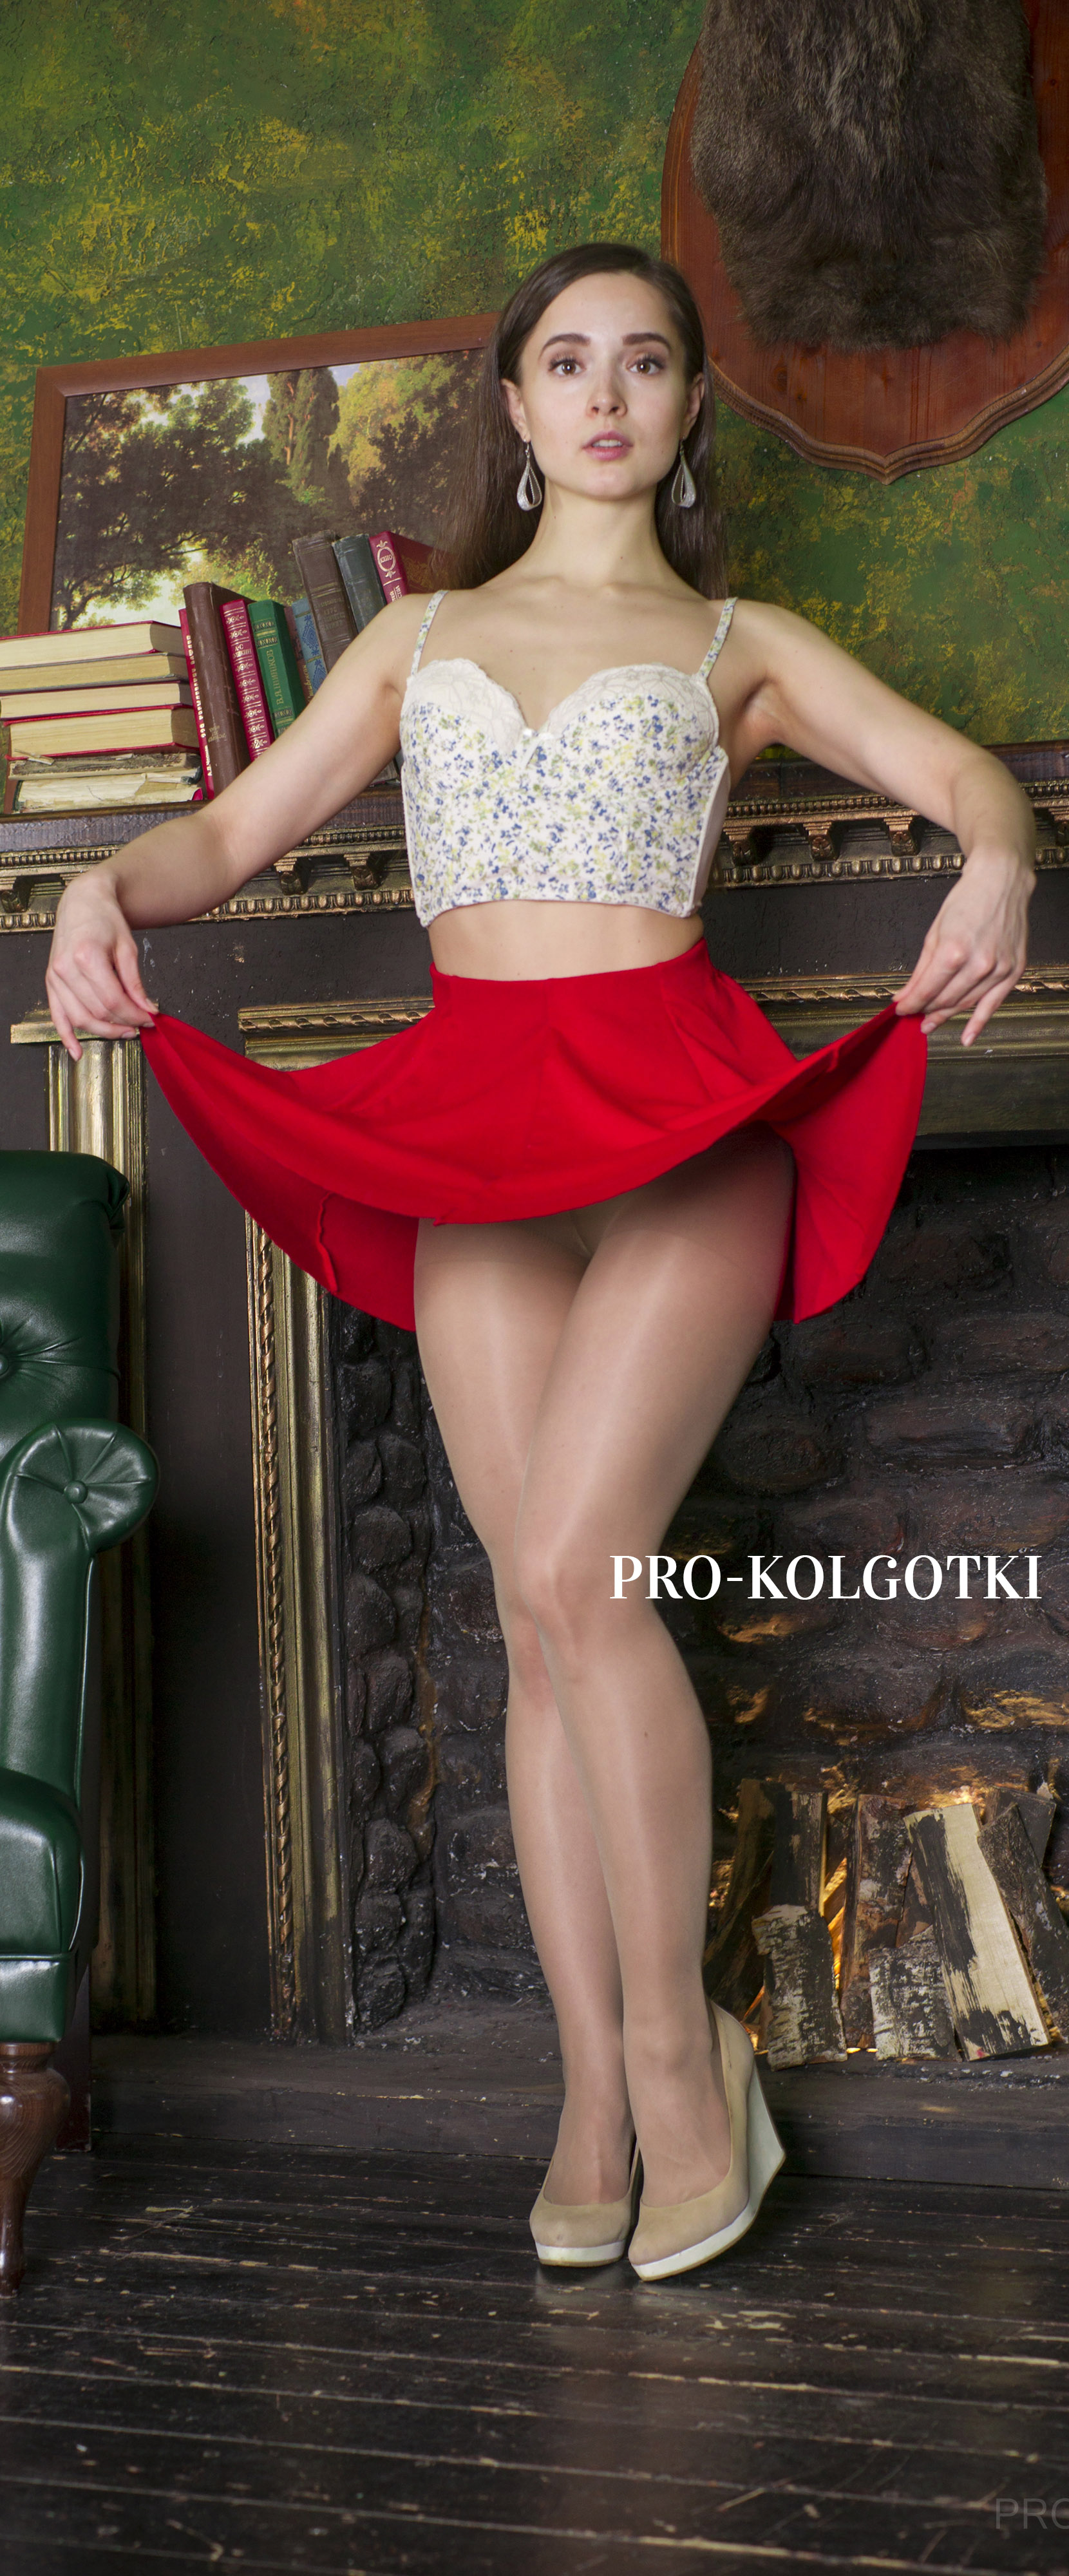 girls in pantyhose - photo from pro-kolgotki magazine April 2018 (part 2)